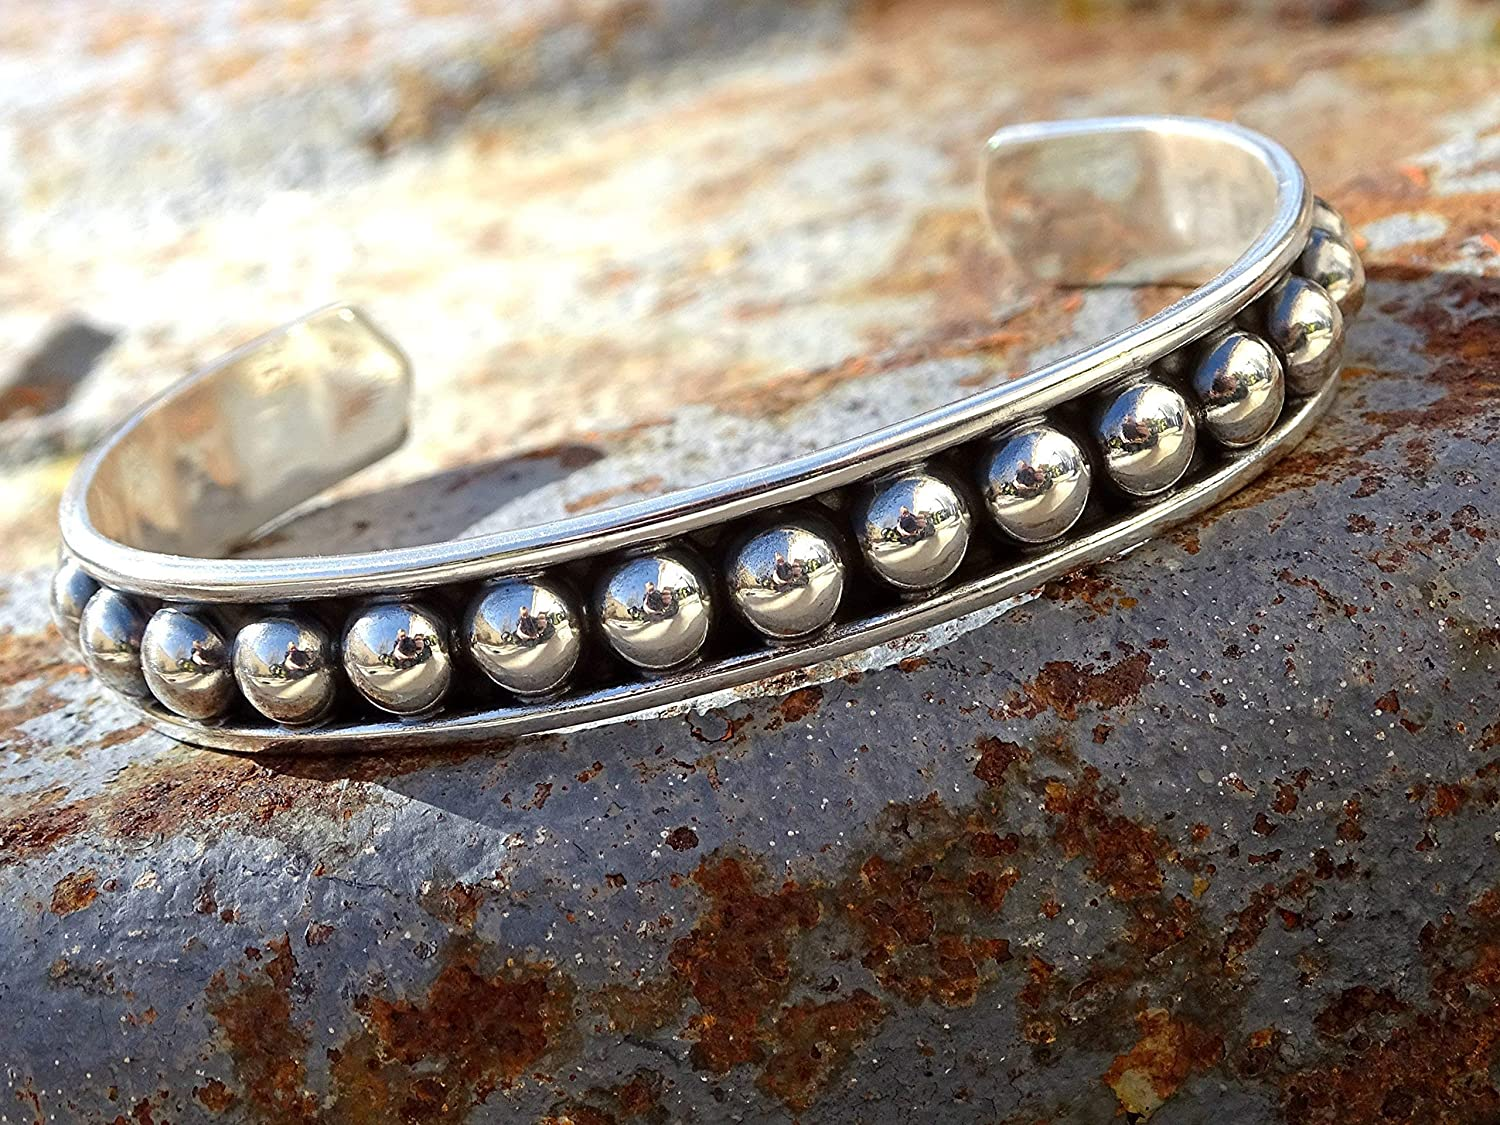 viking cuff for men silver mens cuff beaded bead cuff bracelet solid silver viking cuff bracelet for him mens cuff bracelet silver